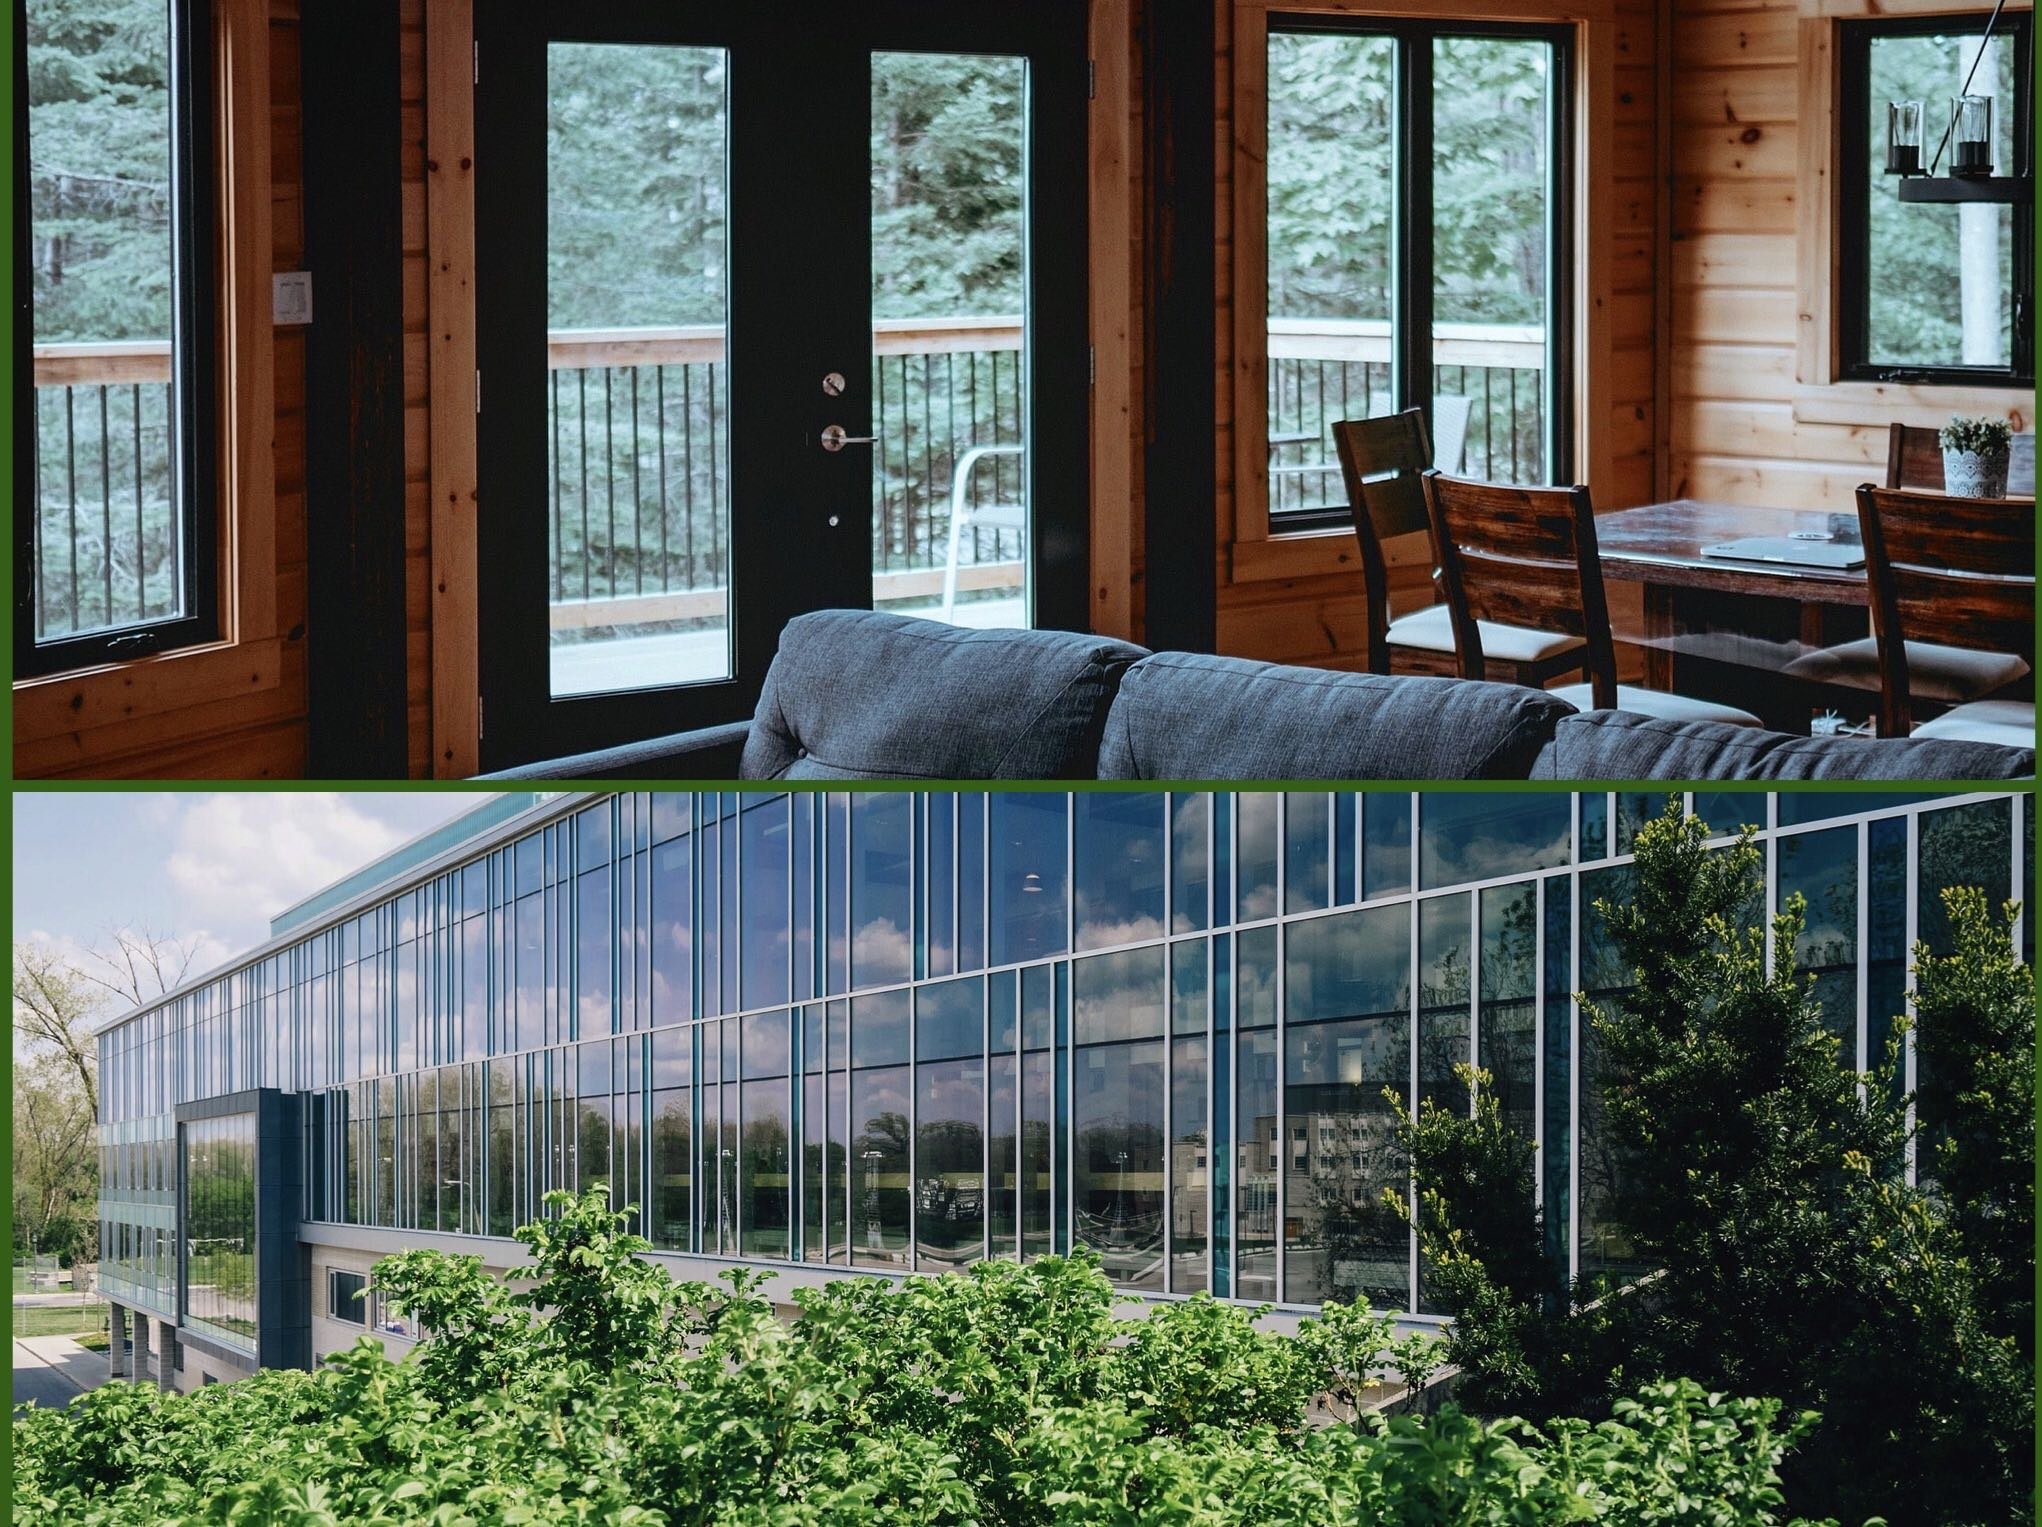 Seeing Green: Solar Control Window Films Save Money & Conserve Energy - Home and Commercial Window Film in Denver, Colorado